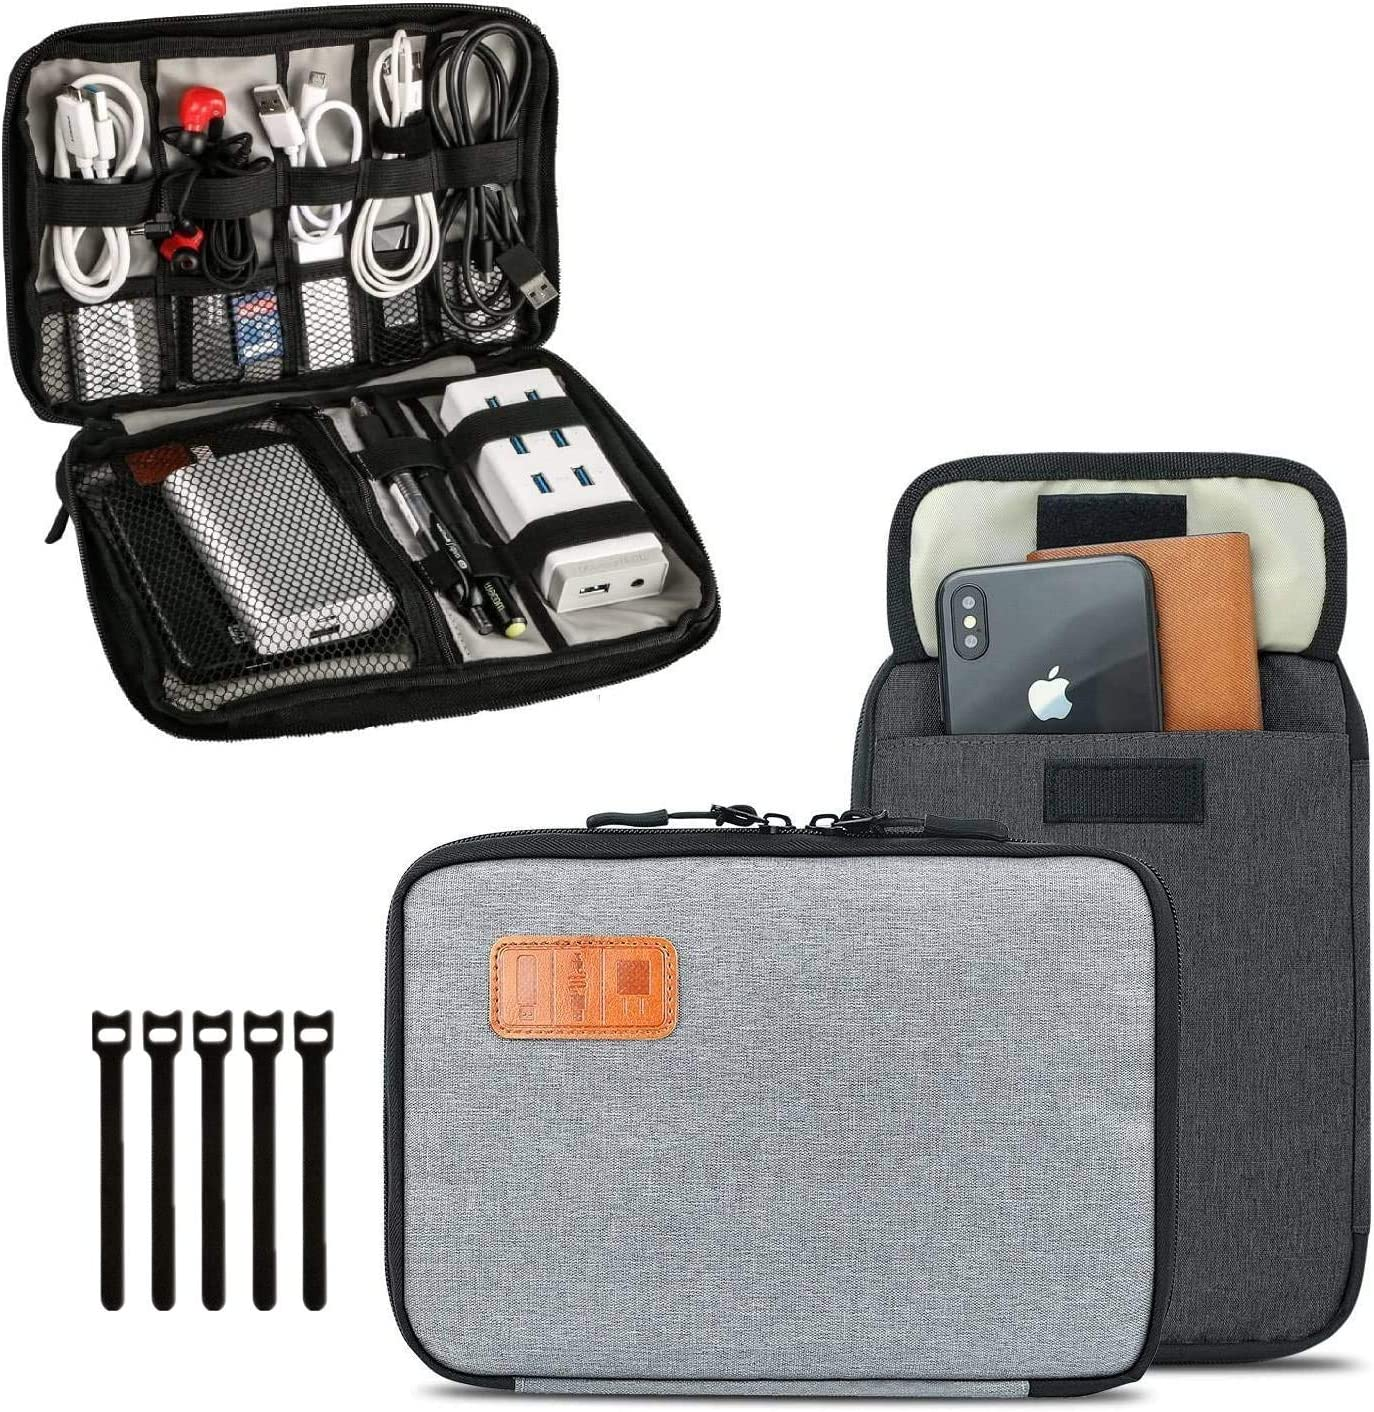 Travel Cable Organizer Bag, T TERSELY Travel Gadget Cables Electronics Accessories Organizer Bag,Portable Tech Gear Phone Accessories Carrying Storage Case Bag for Headphone Earphone USB (Grey)